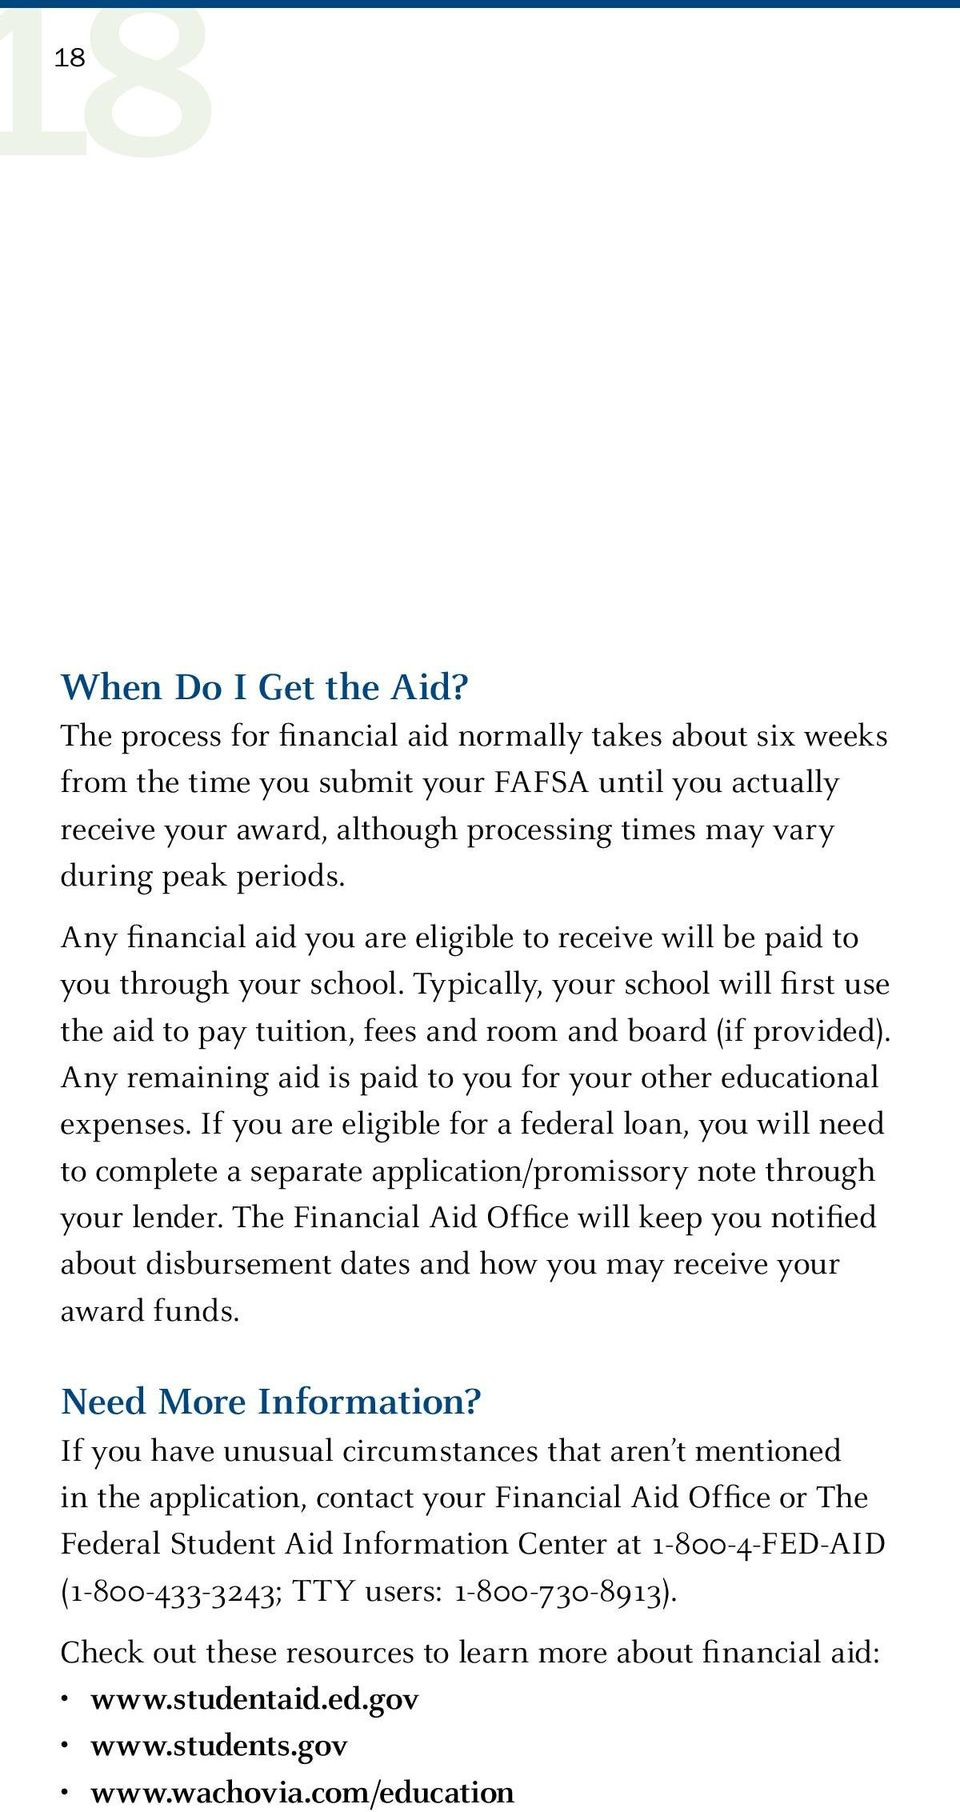 Any financial aid you are eligible to receive will be paid to you through your school. Typically, your school will first use the aid to pay tuition, fees and room and board (if provided).